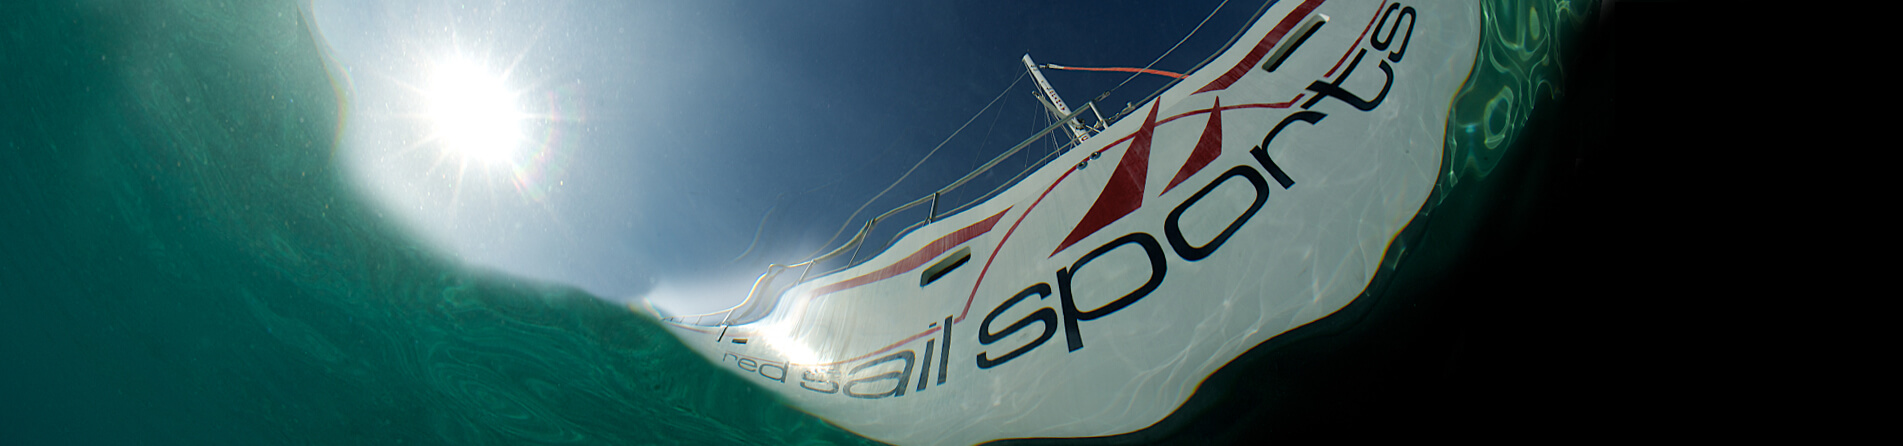 About Red Sail Sports Grand Cayman